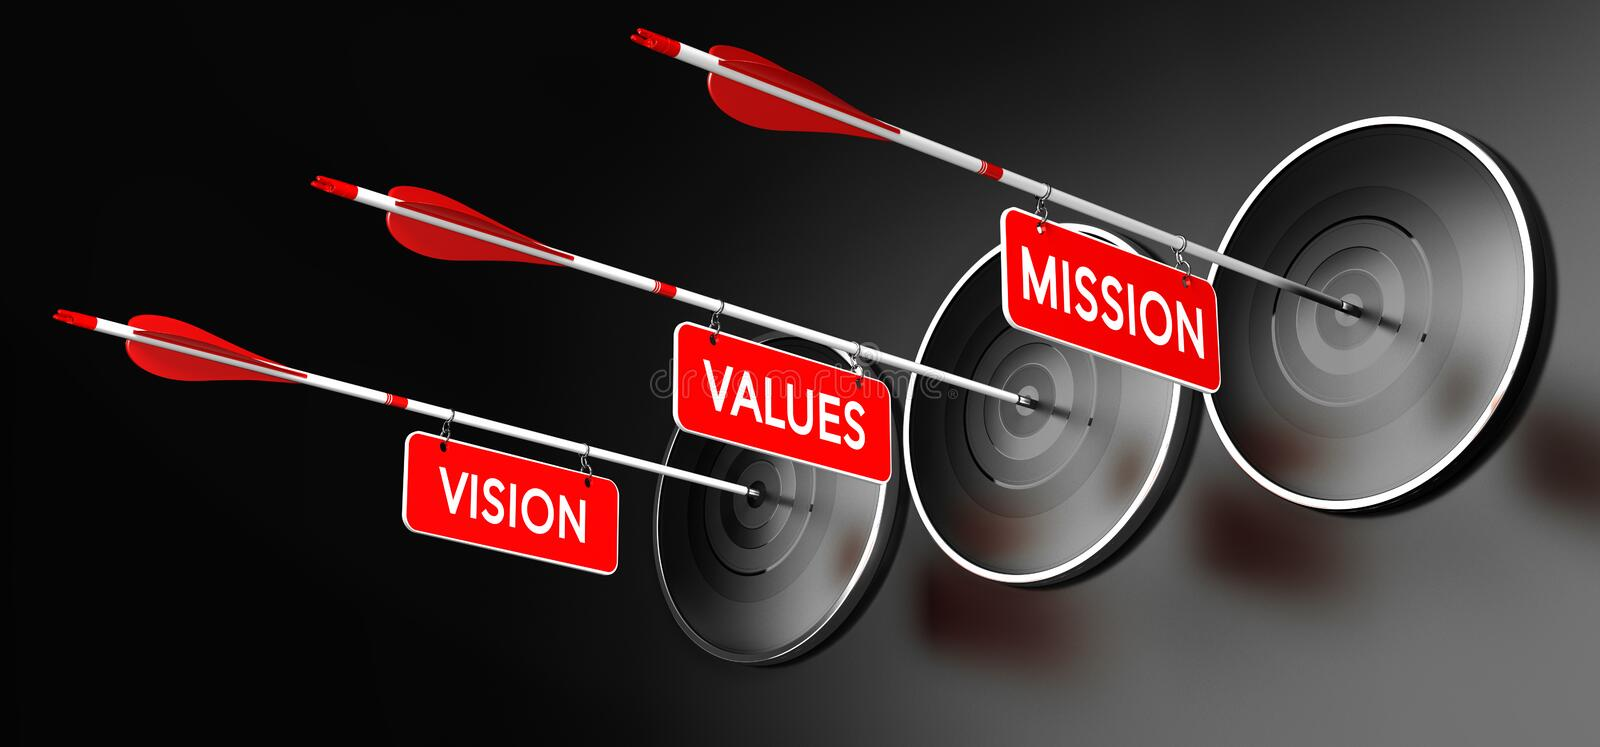 Mission, Vision and Values Statements vector illustration